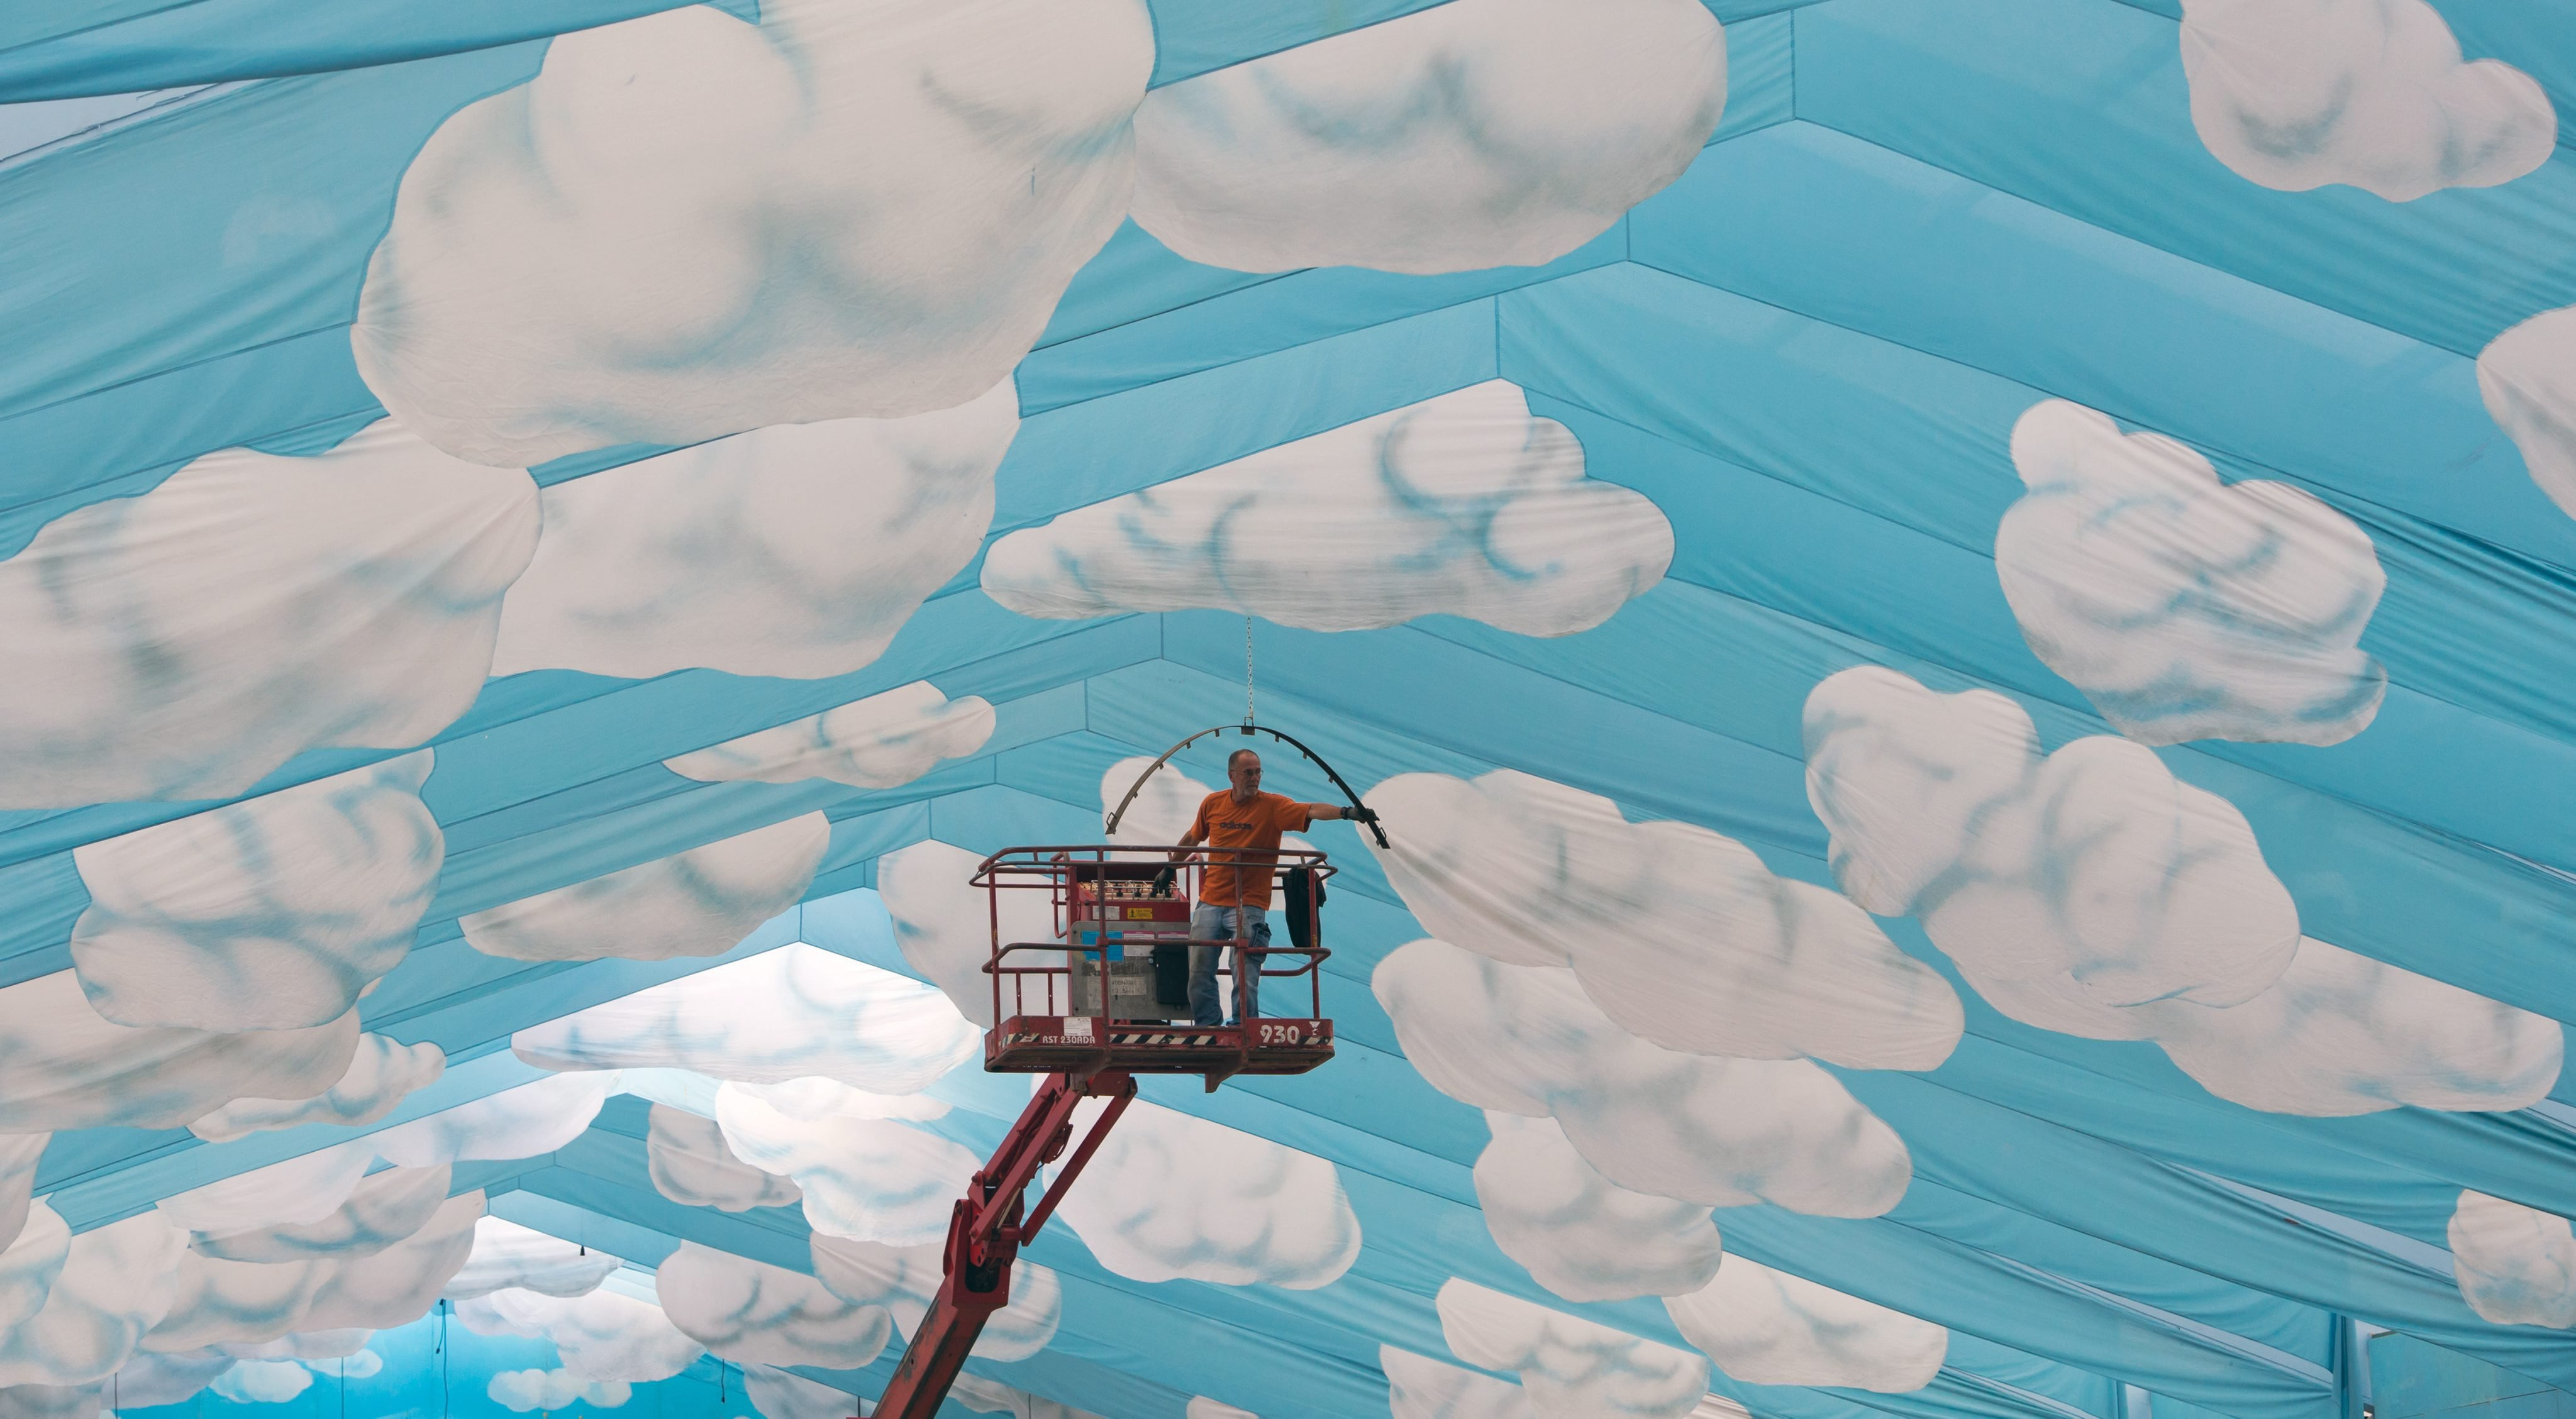 Aug. 4, 2014. A worker on a lift inspects the ceiling decoration with clouds pattern in a beer tent on the Oktoberfest grounds at Theresienwiese in Munich, Germany.